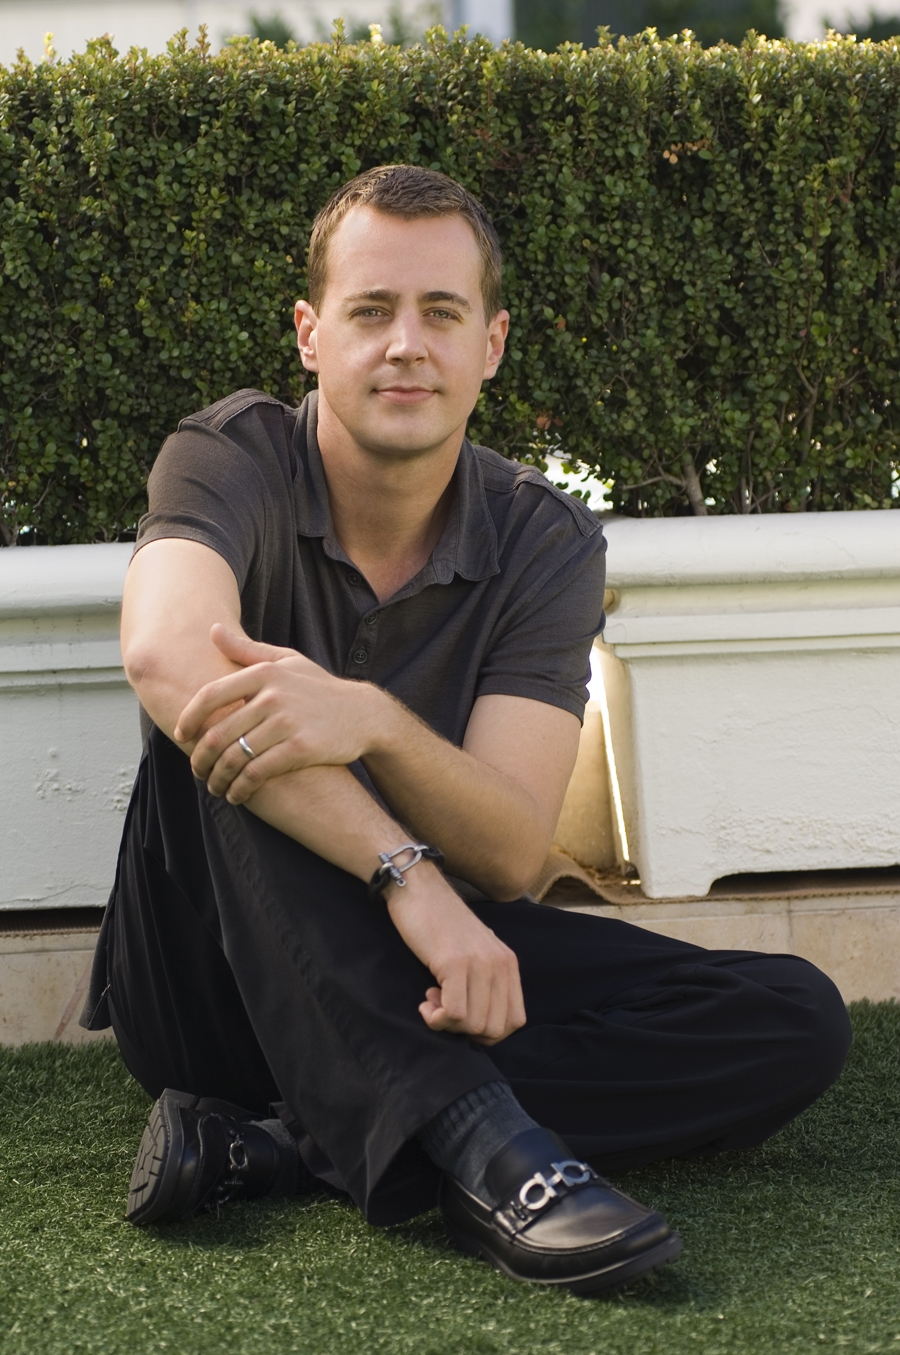 Sean Murray, 2009, photoshot by Jeff Katz (L.A.)